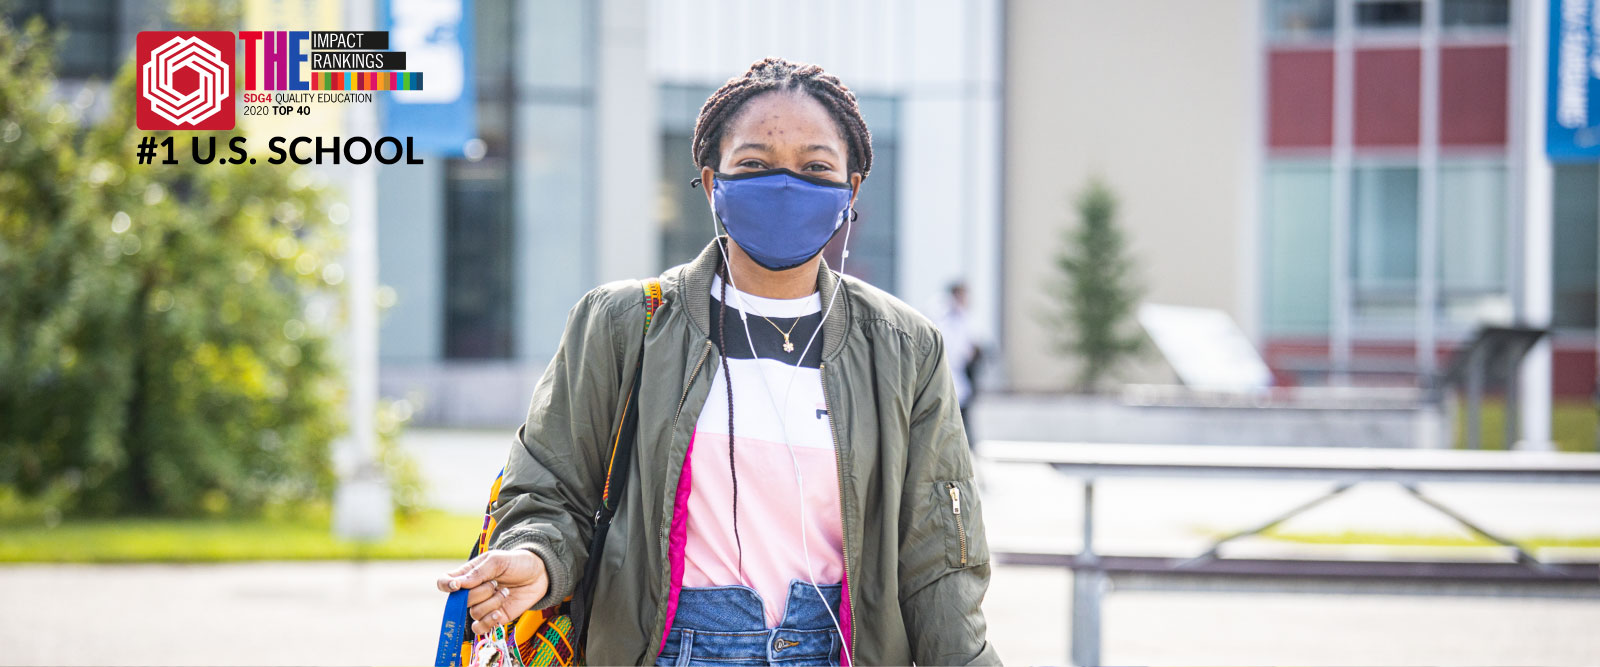 A student wearing a mask walking through Cornerstone Plaza